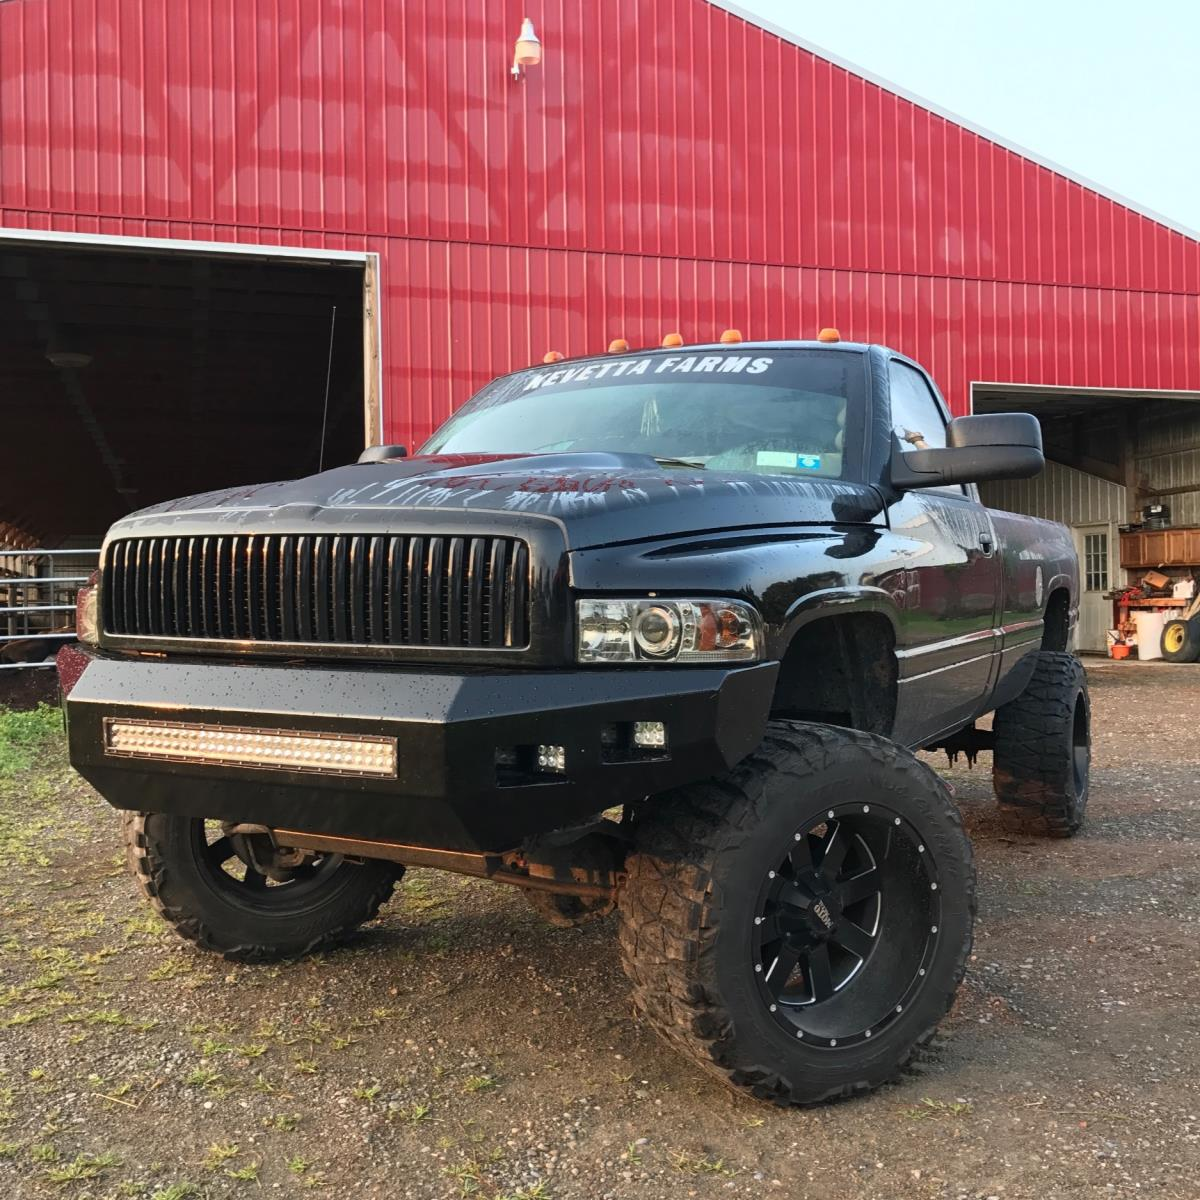 Move Bumpers Makes Sure That Your Build Stands Out From The Crowd